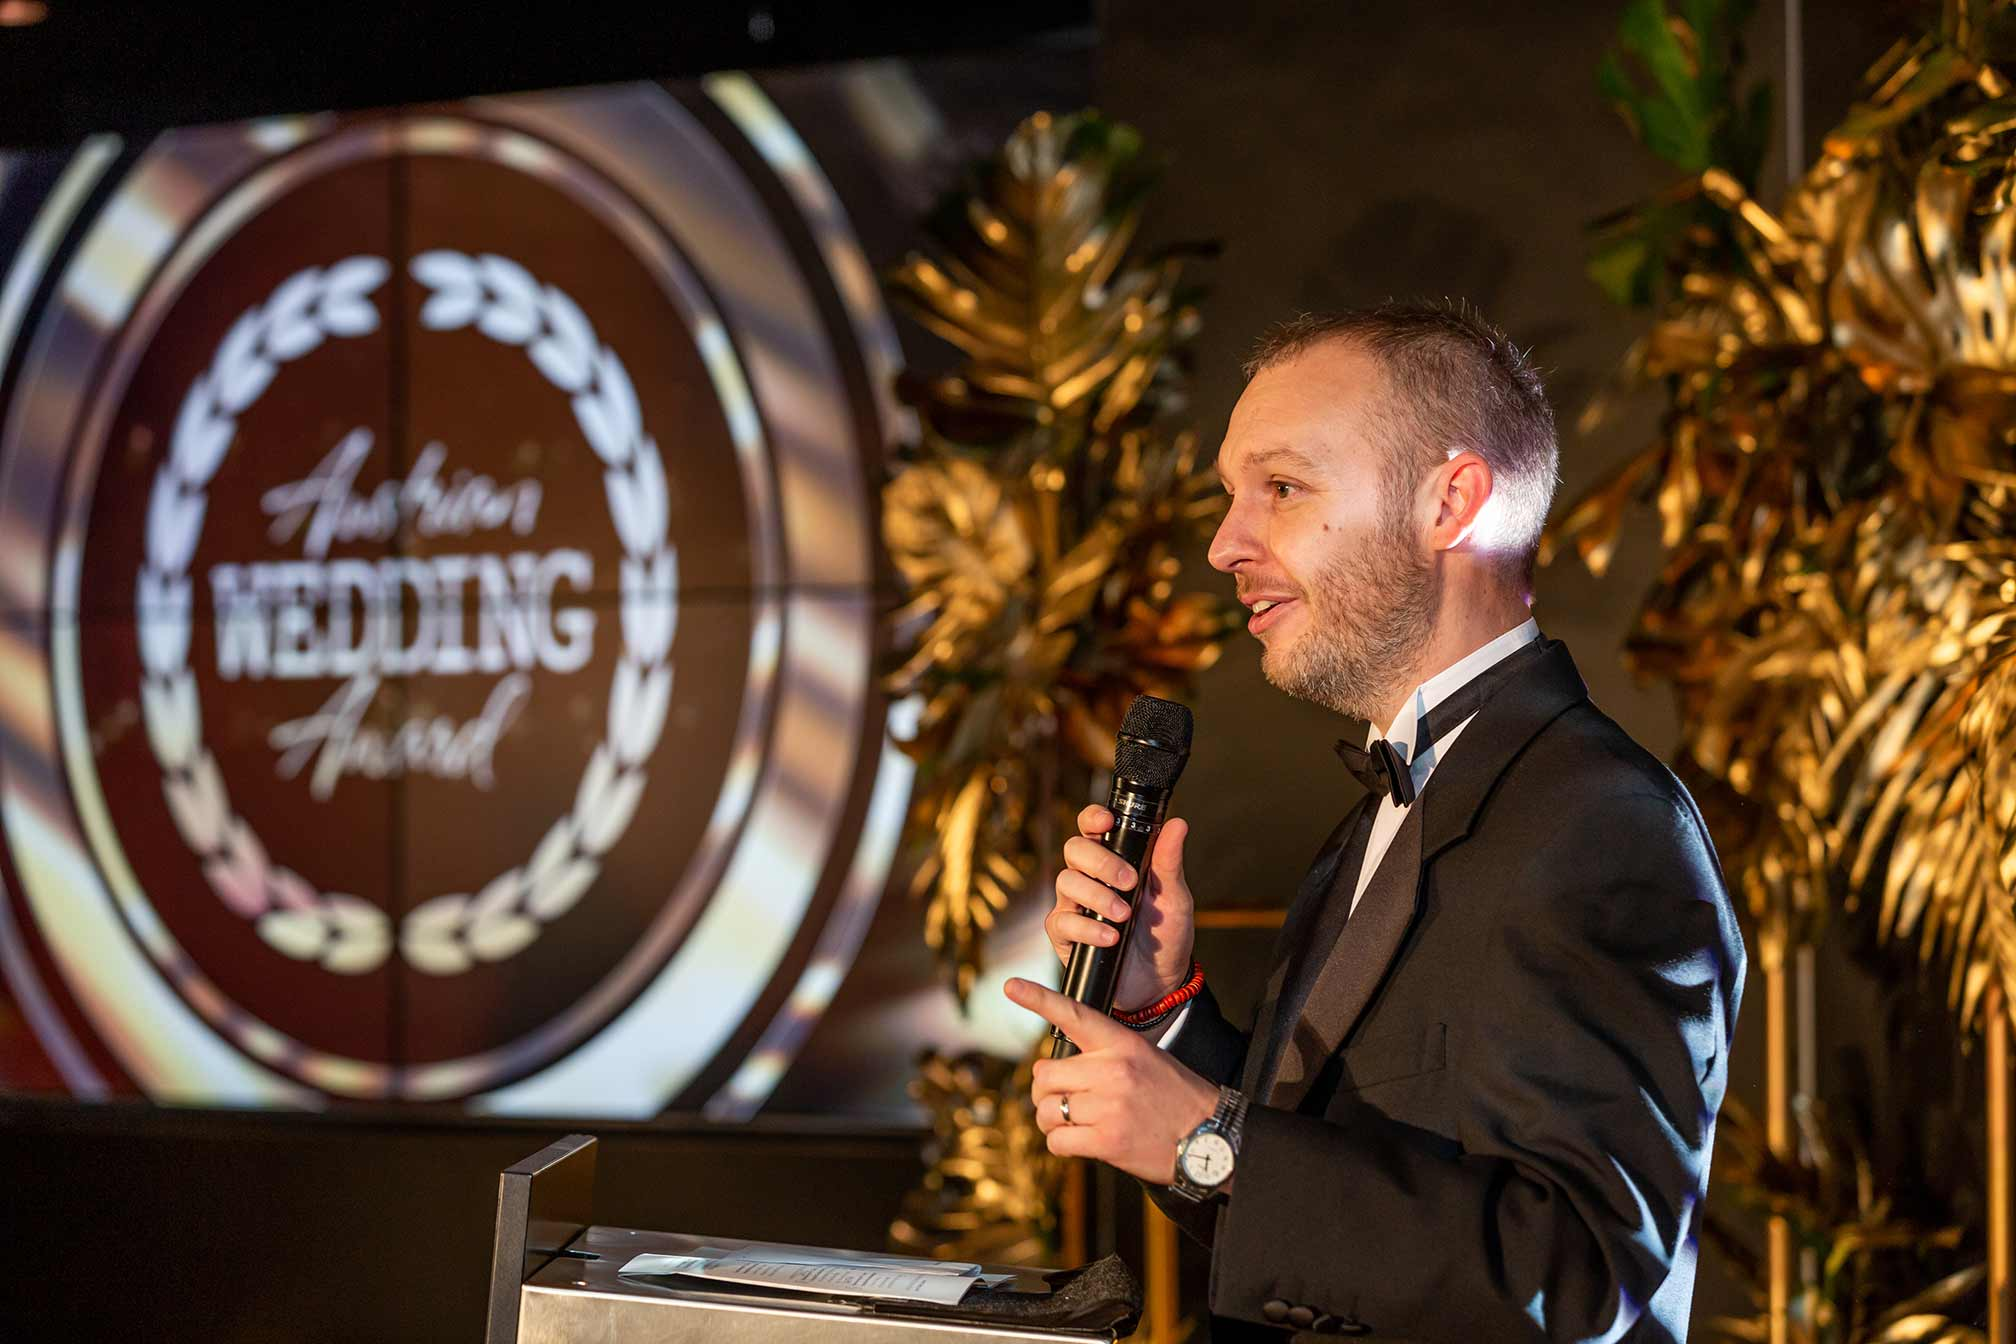 Austrian Wedding Awards, Aaron Storry